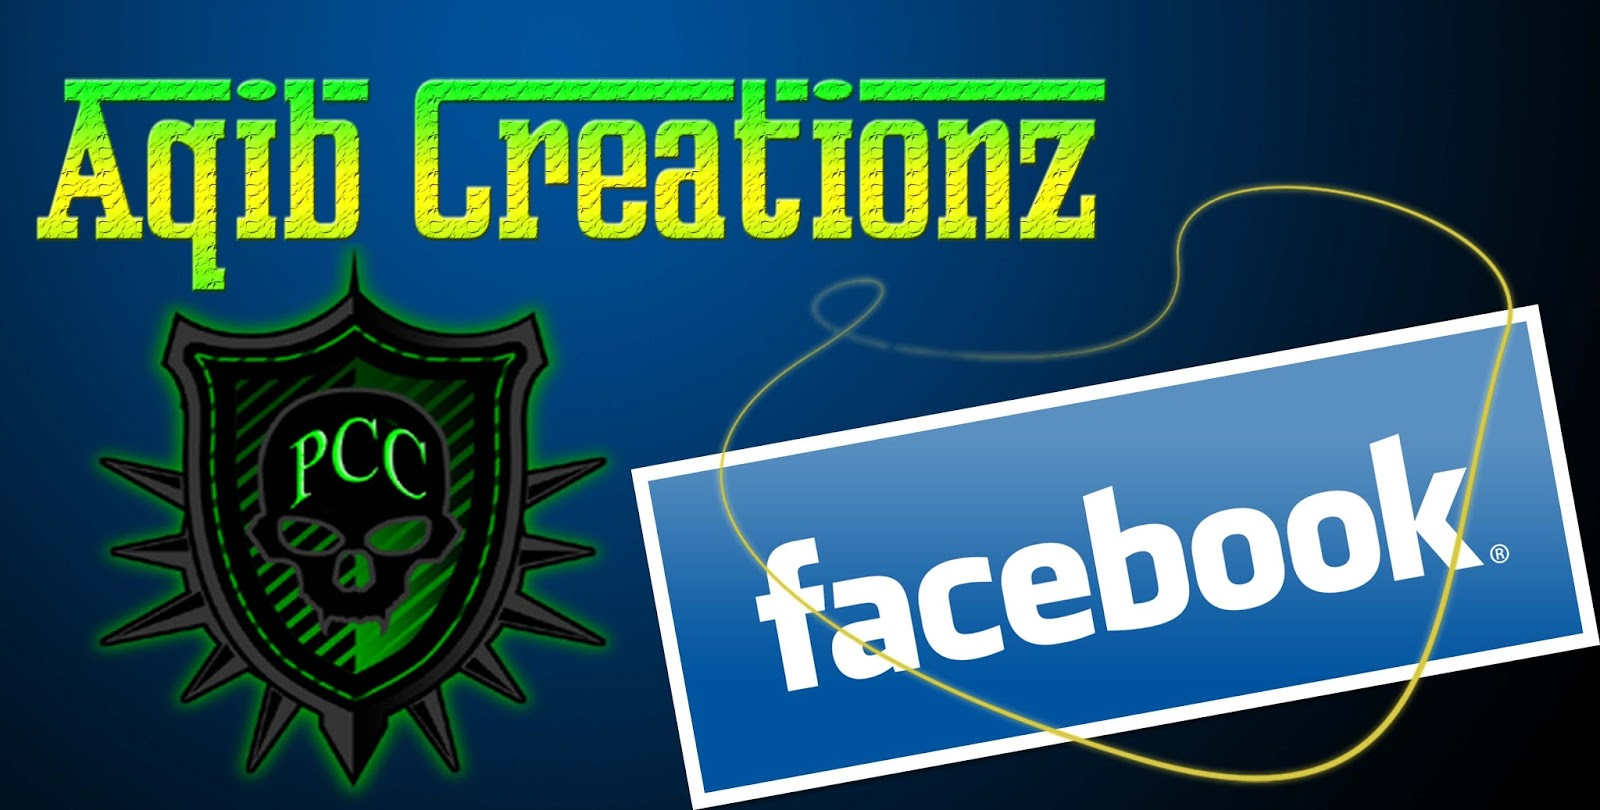 Stylish Name For Facebook Aqib Creationz